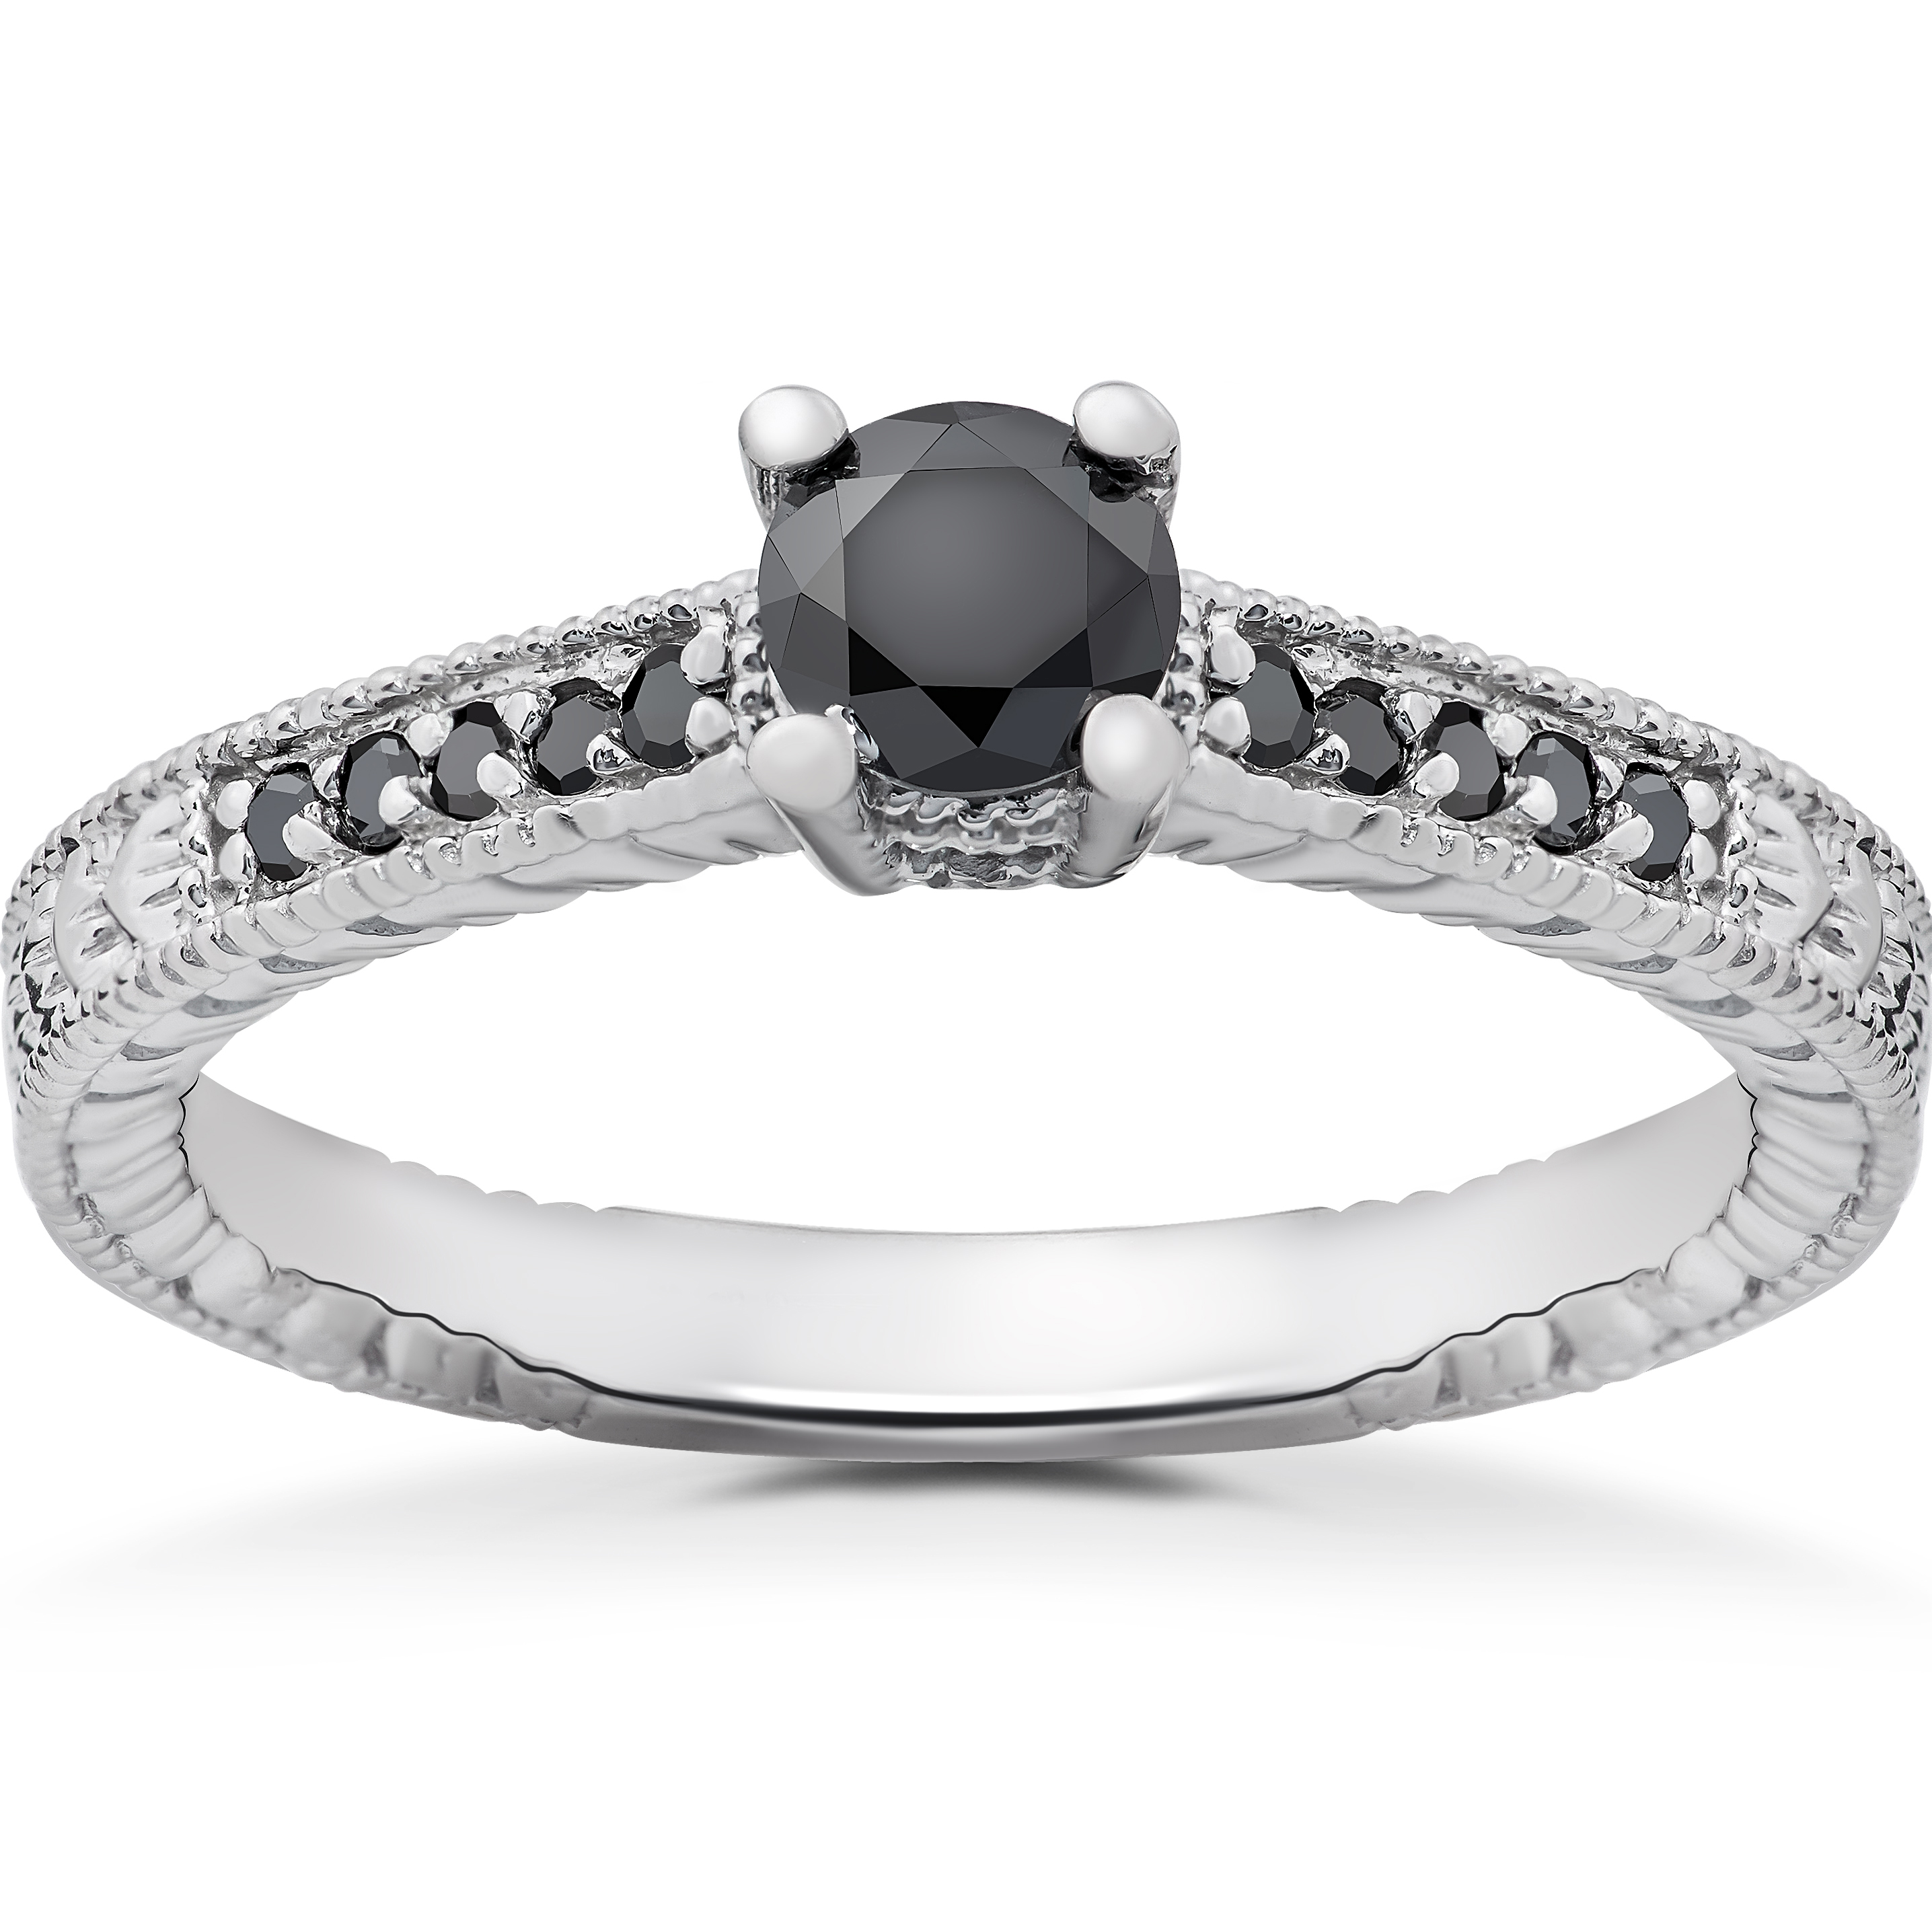 1 2 ct black vintage engagement ring 14k white